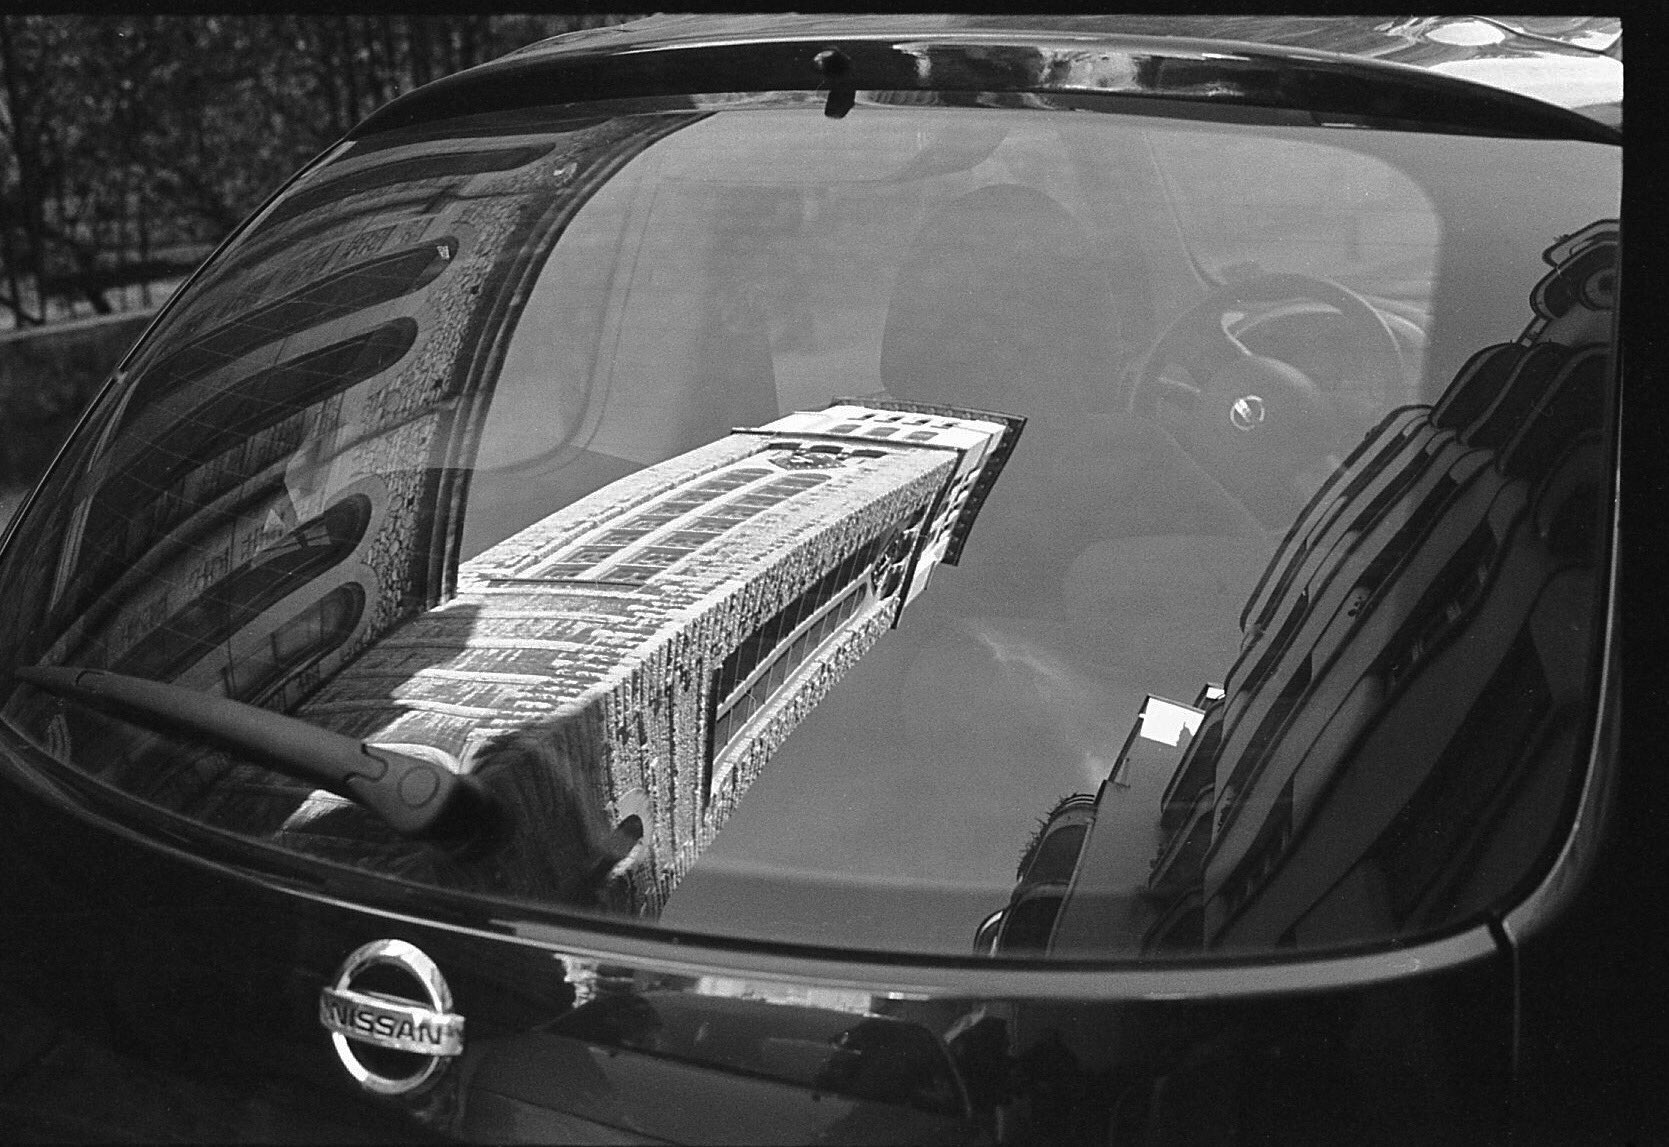 @justgipsy · 18h Replying to @ILFORDPhoto #carsonfilm #ilfordphoto #fridayfavourites Plenty of room in the back of this car for those difficult to fit objects. #delta100